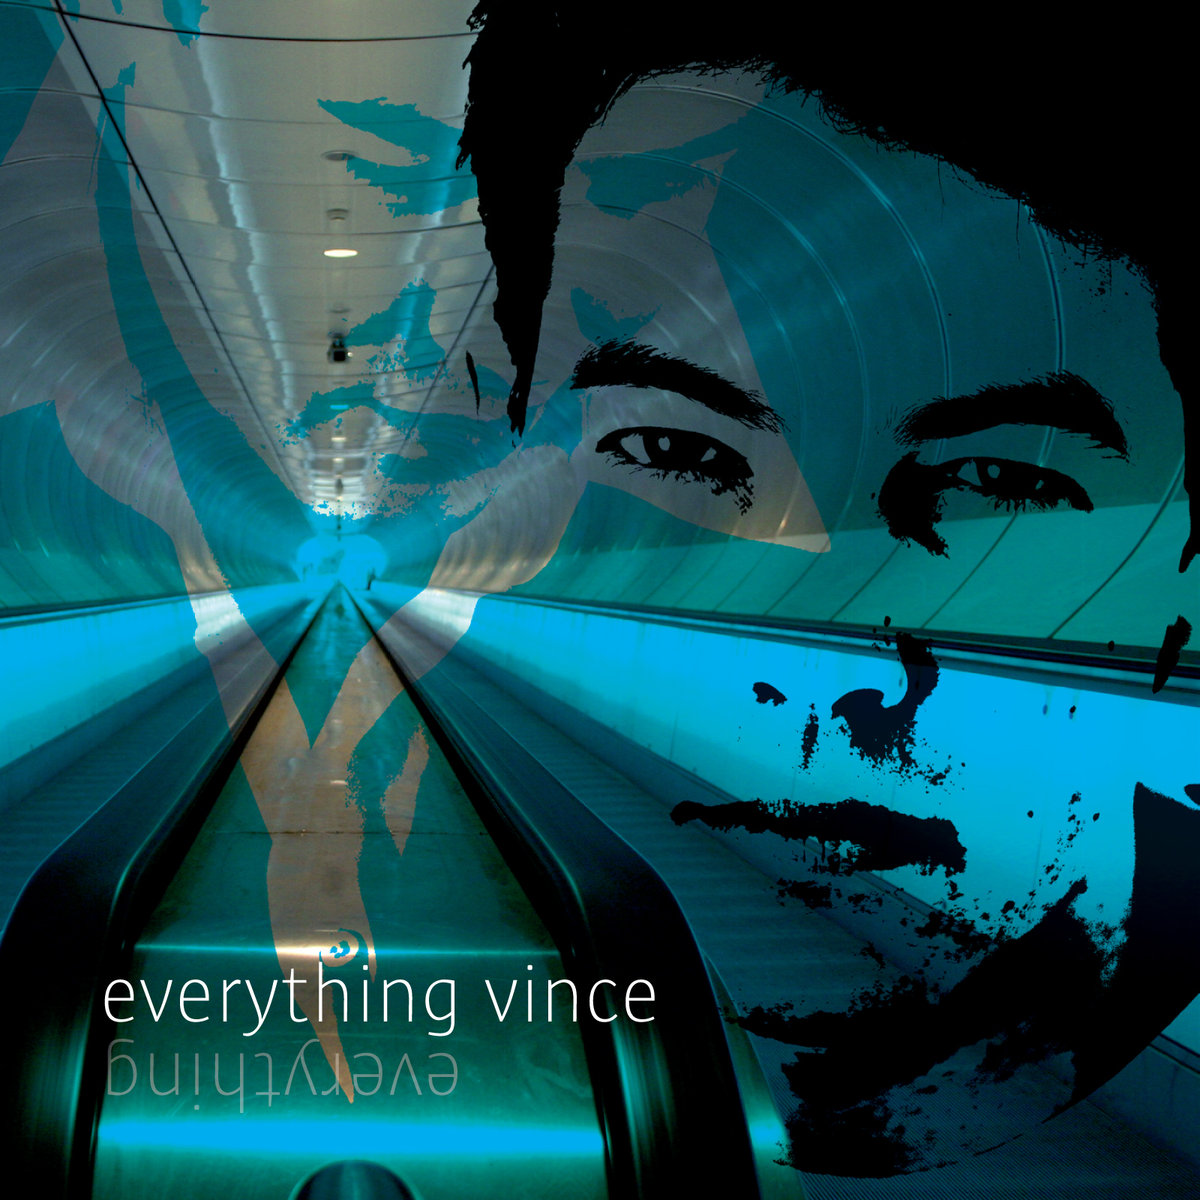 Vince - Morning Breeze @ 'Everything' album (pop, pop punk)